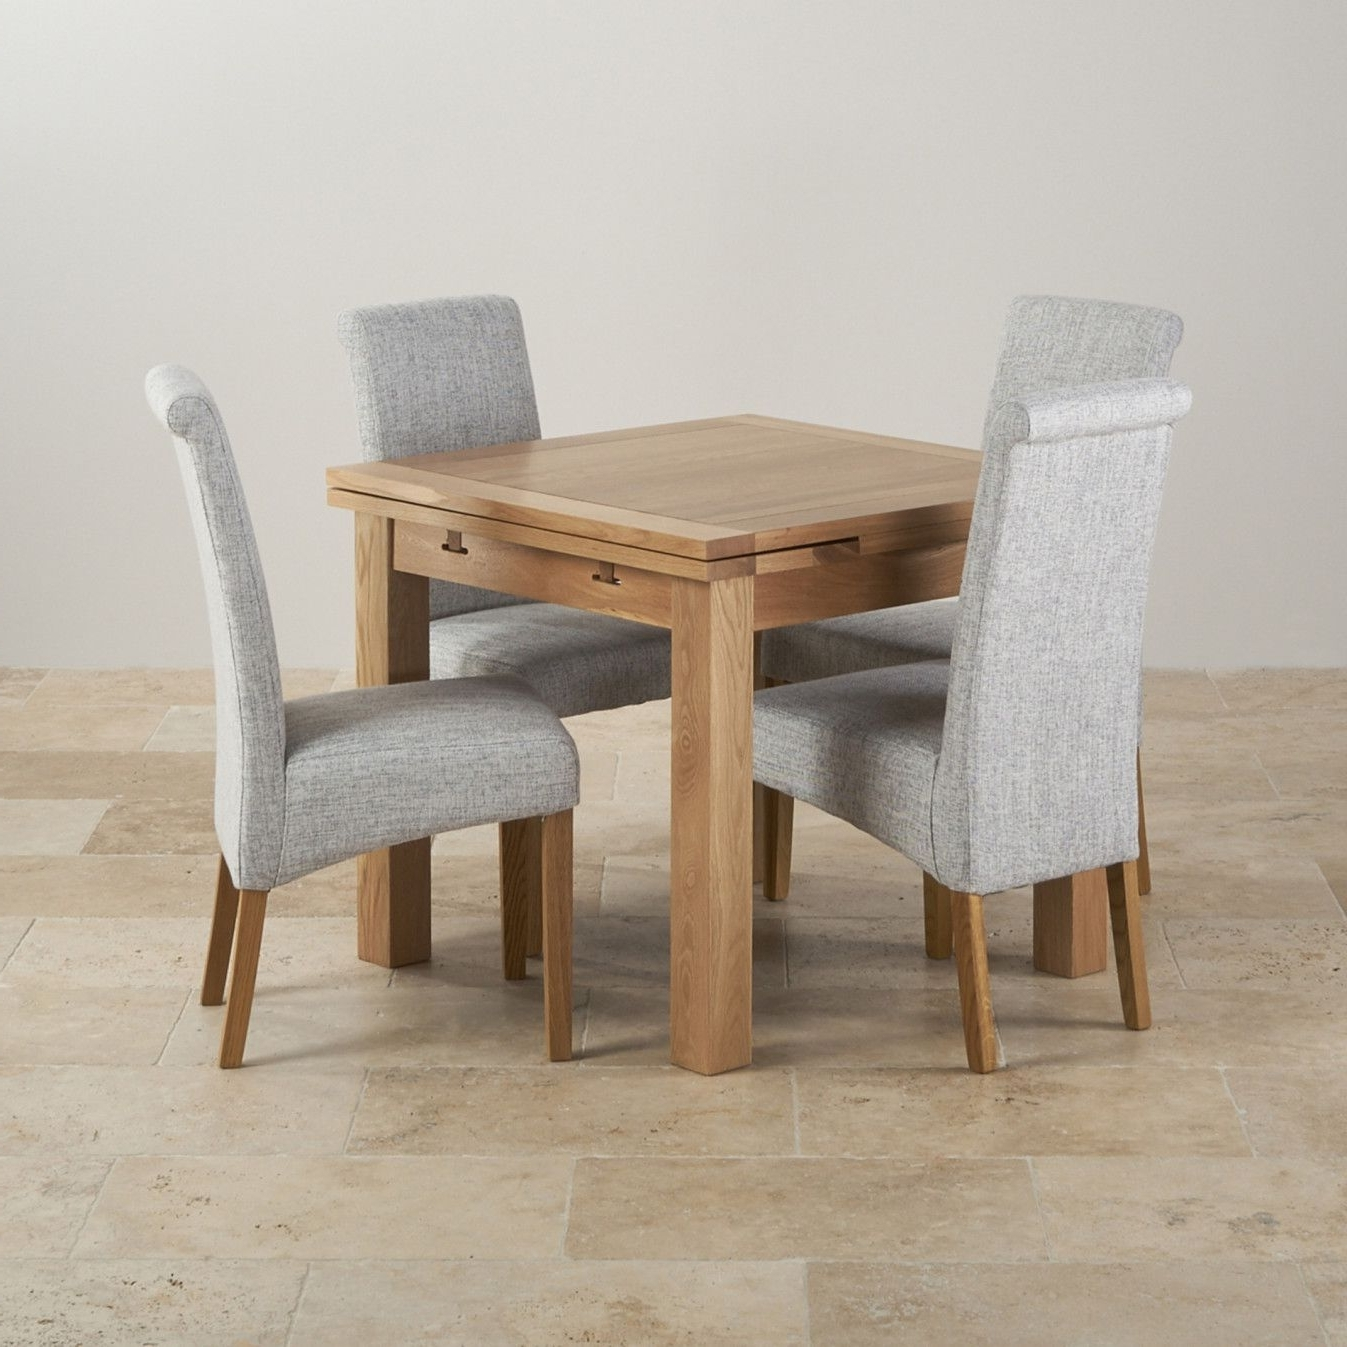 Extending Oak Dining Tables And Chairs Intended For Latest 2018 Extending Oak Dining Table And Chairs – Rustic Modern Furniture (Gallery 2 of 25)